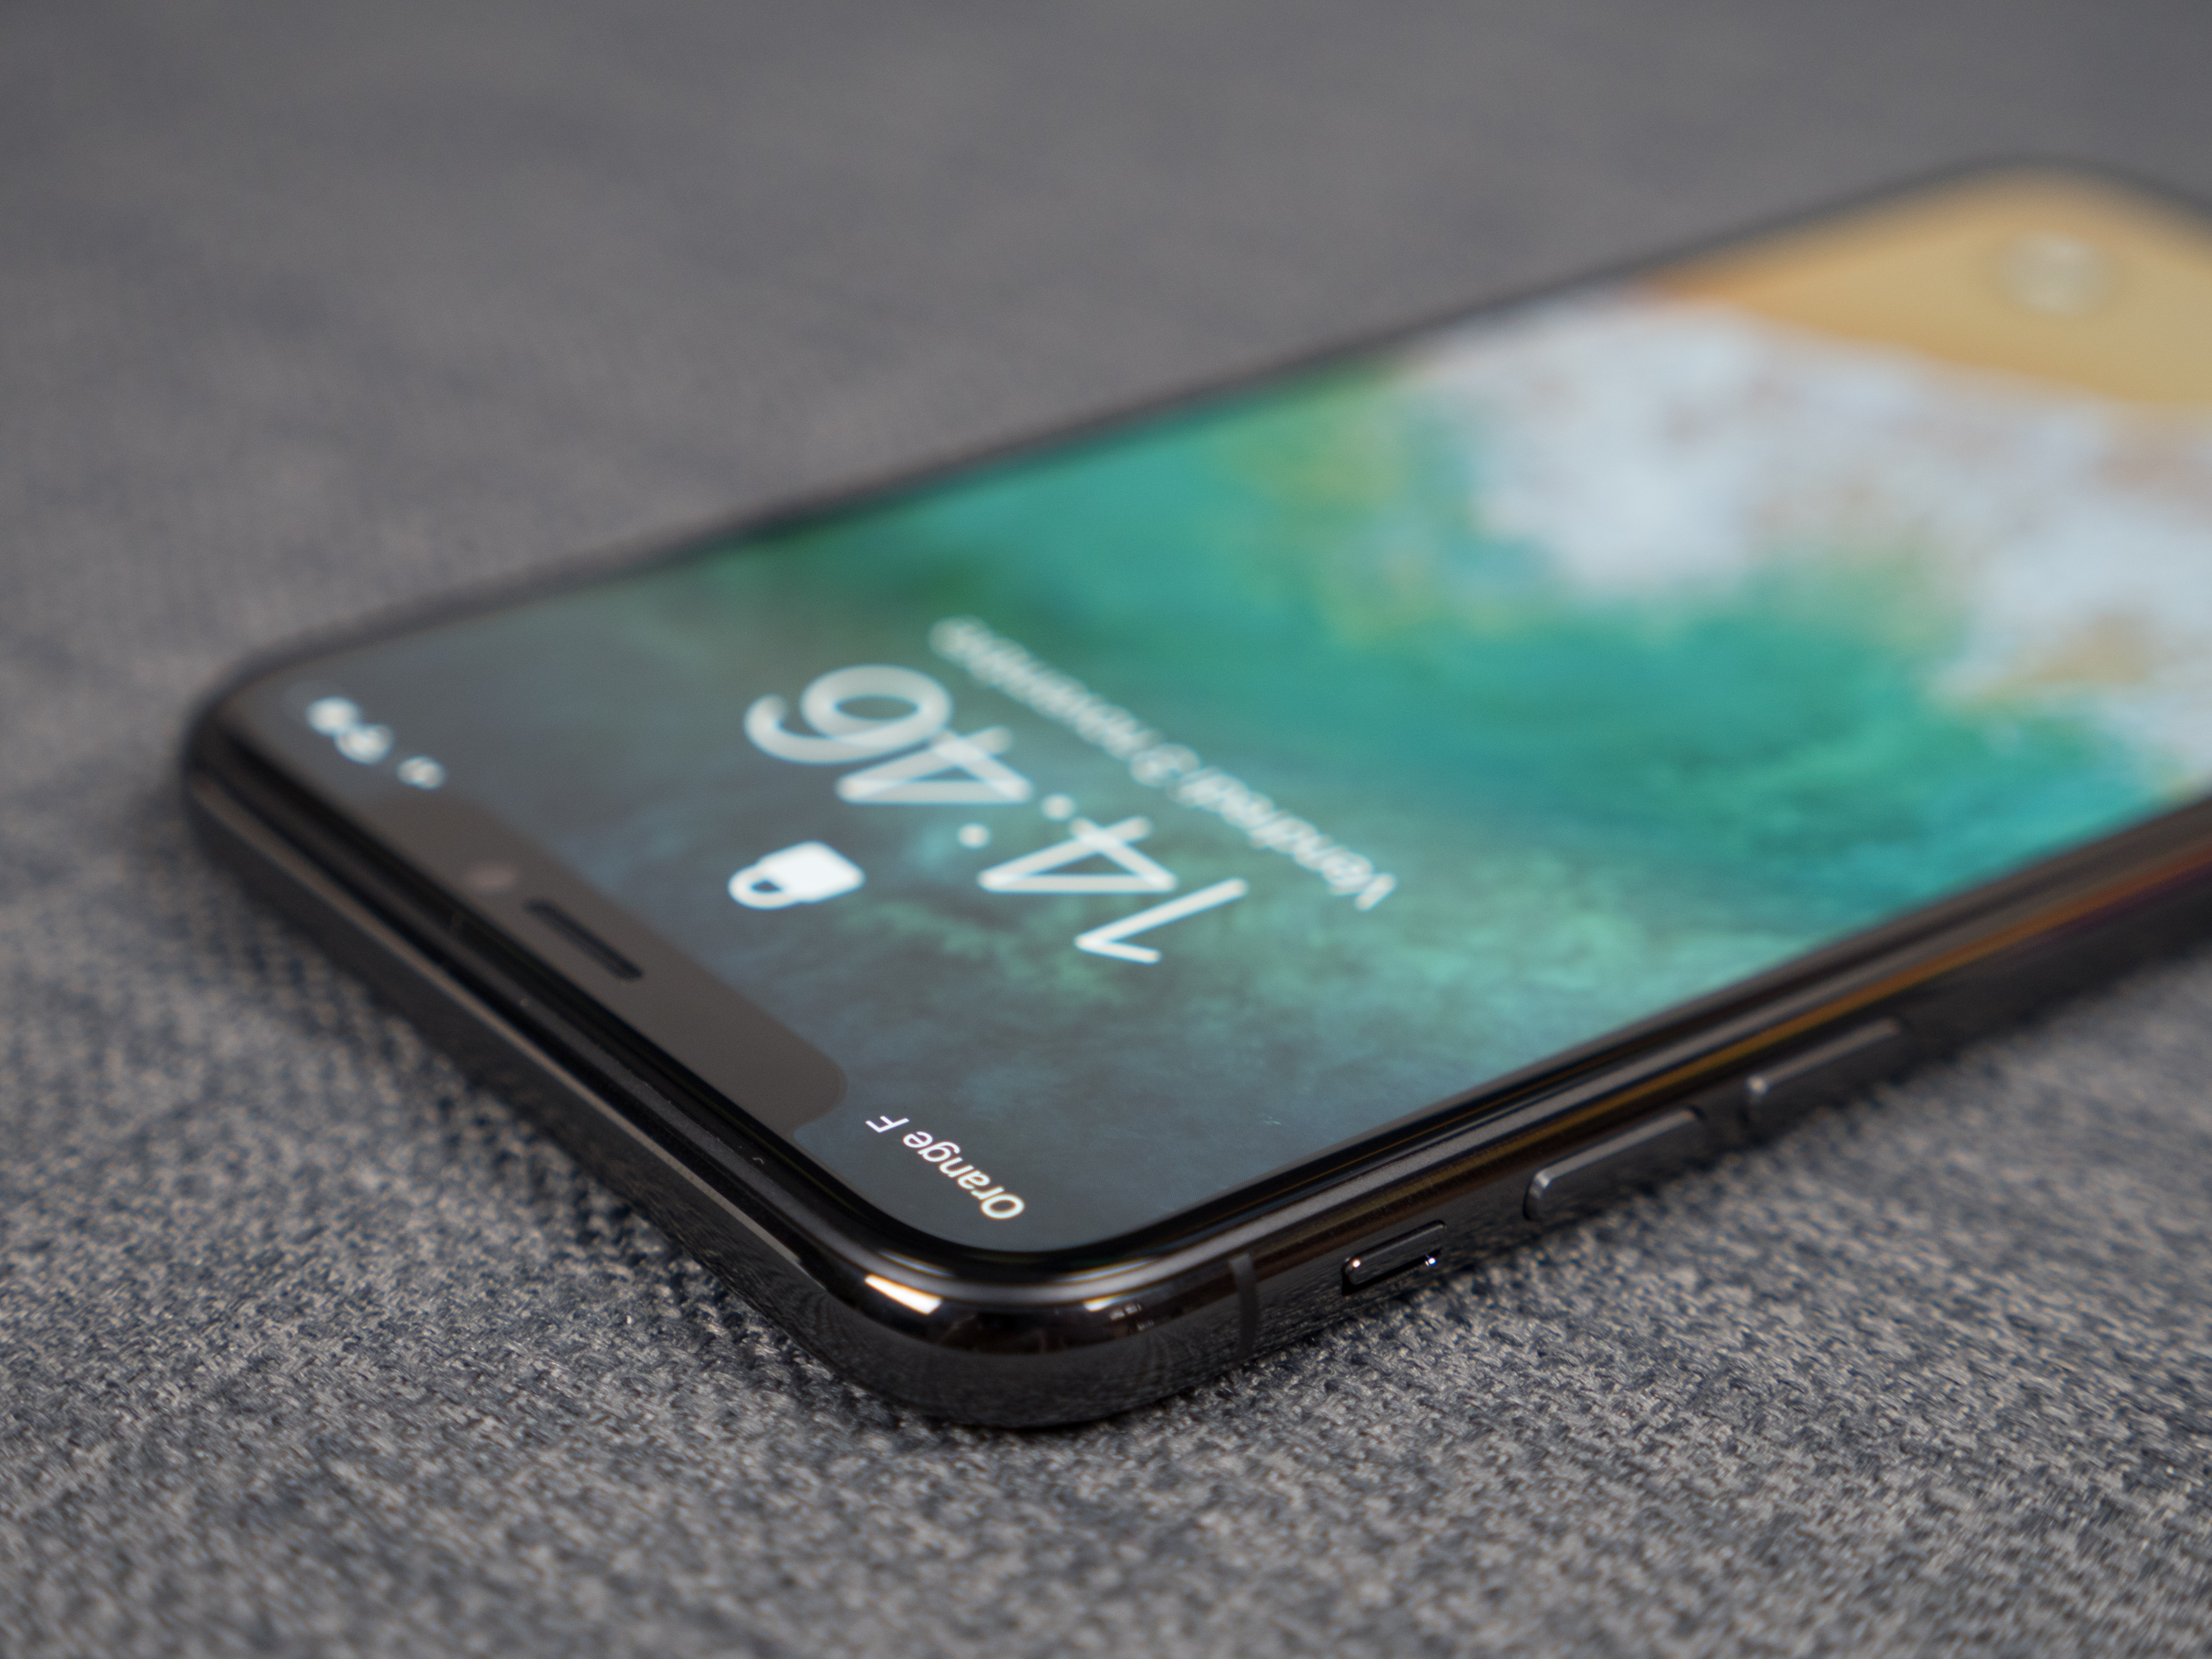 iphone x le meilleur cran du march selon displaymate devant le galaxy note 8 frandroid. Black Bedroom Furniture Sets. Home Design Ideas